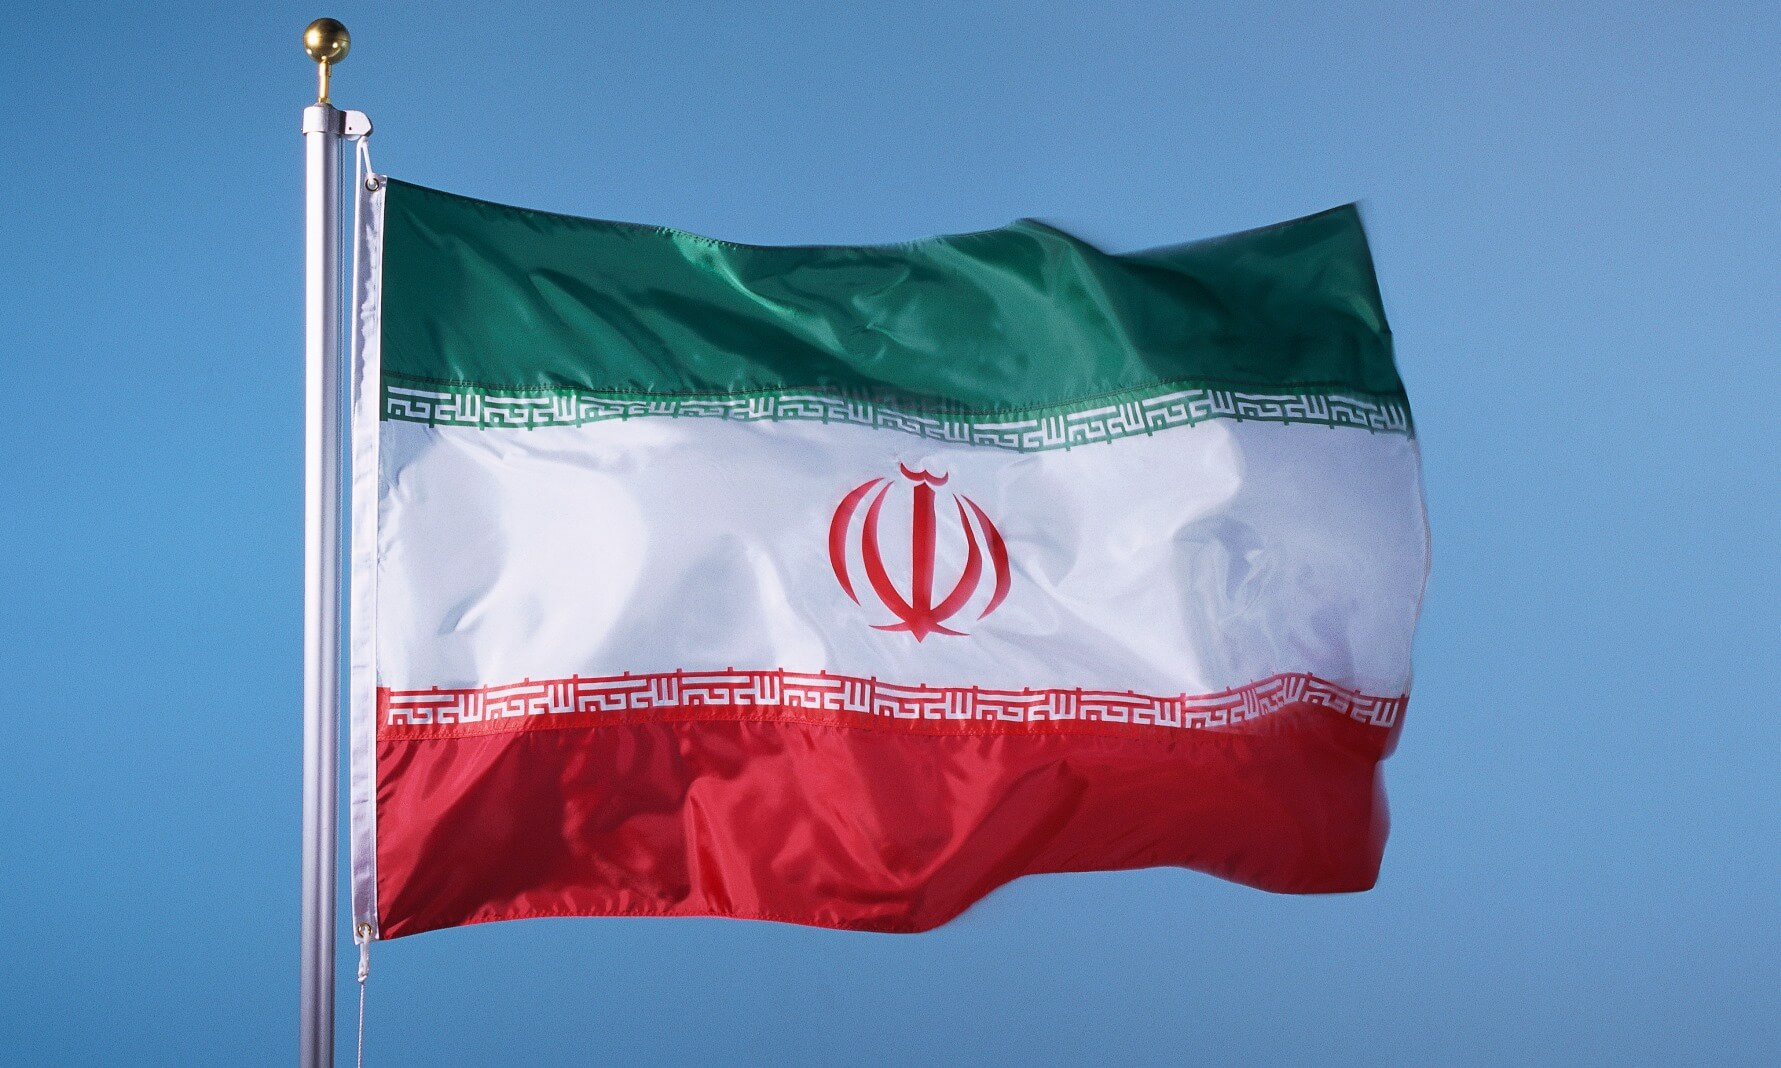 National flag of the Islamic Republic of Iran